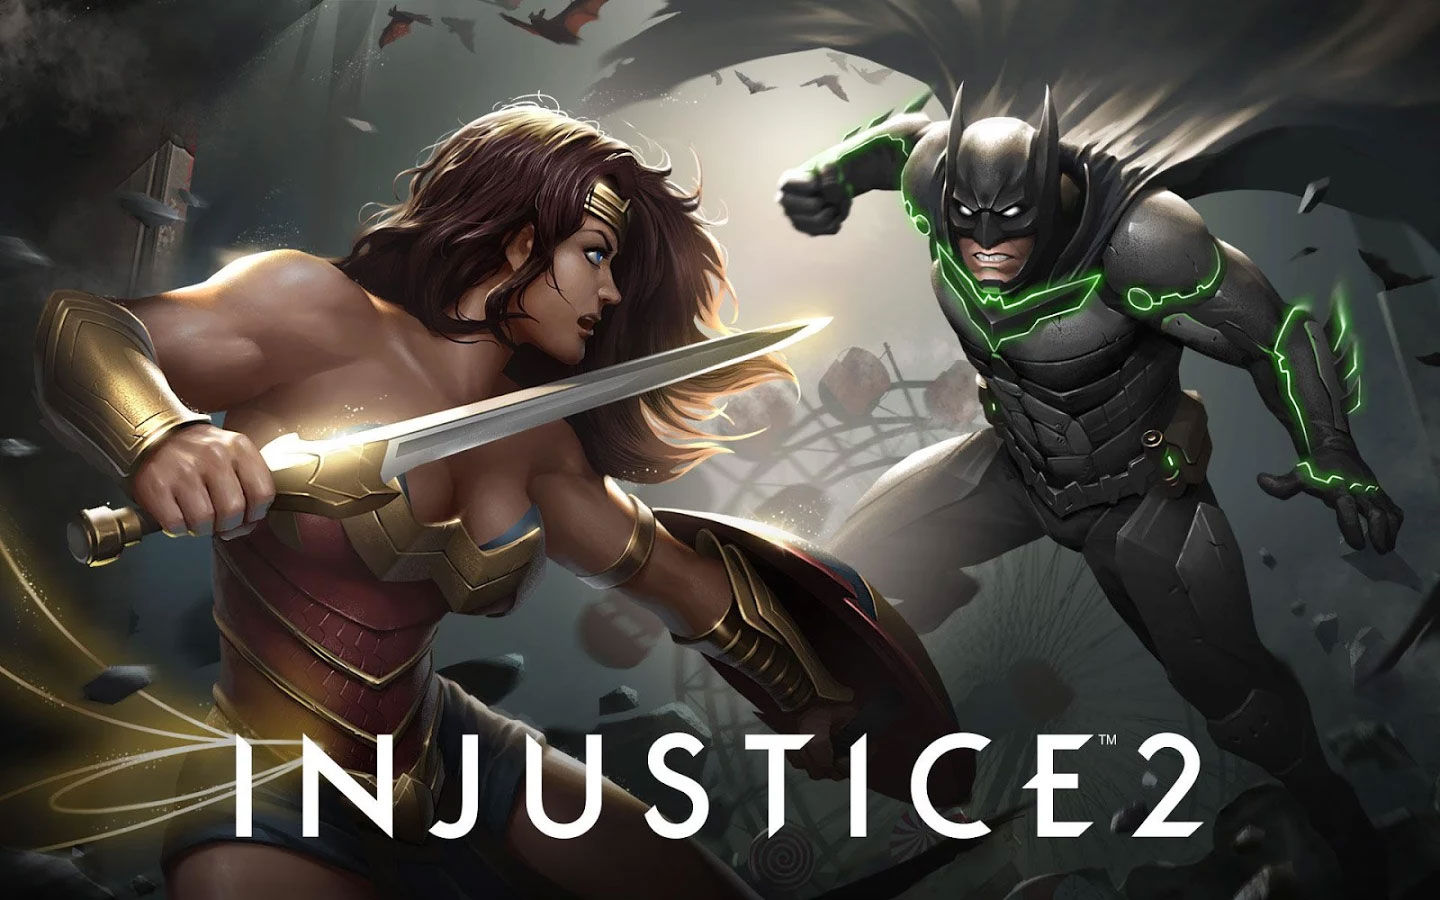 Injustice-2-game-fighting